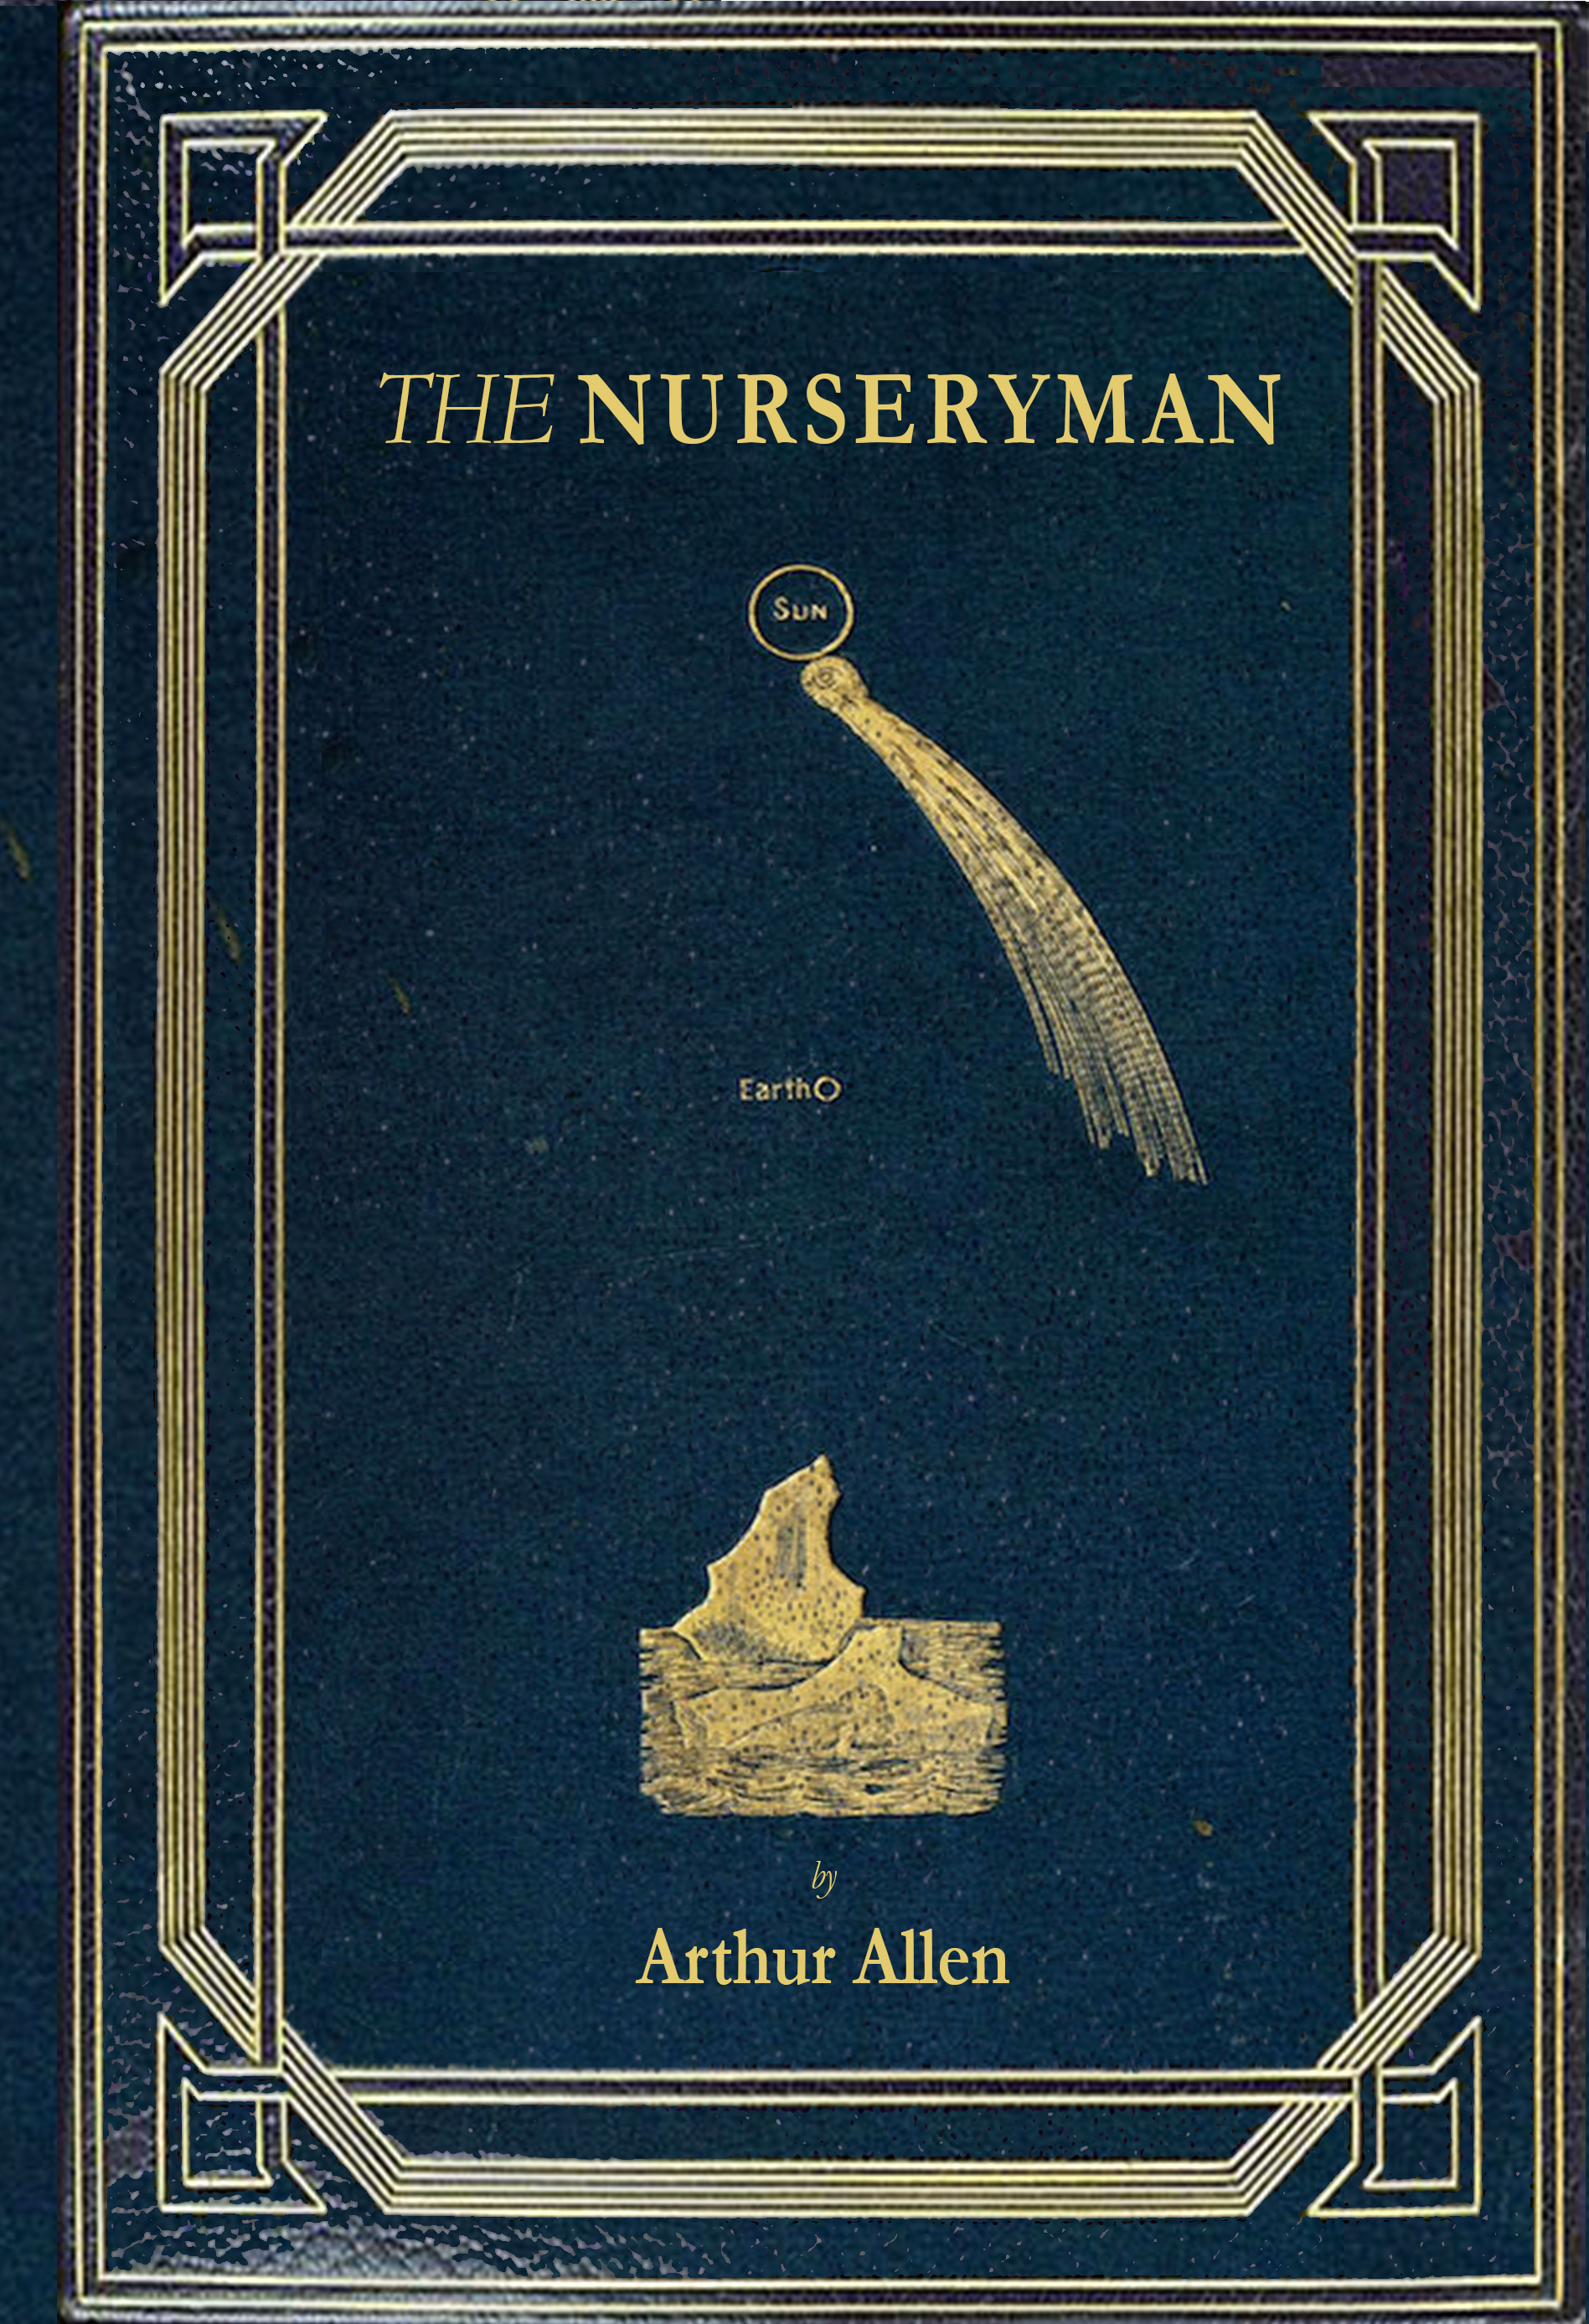 The Nurseryman